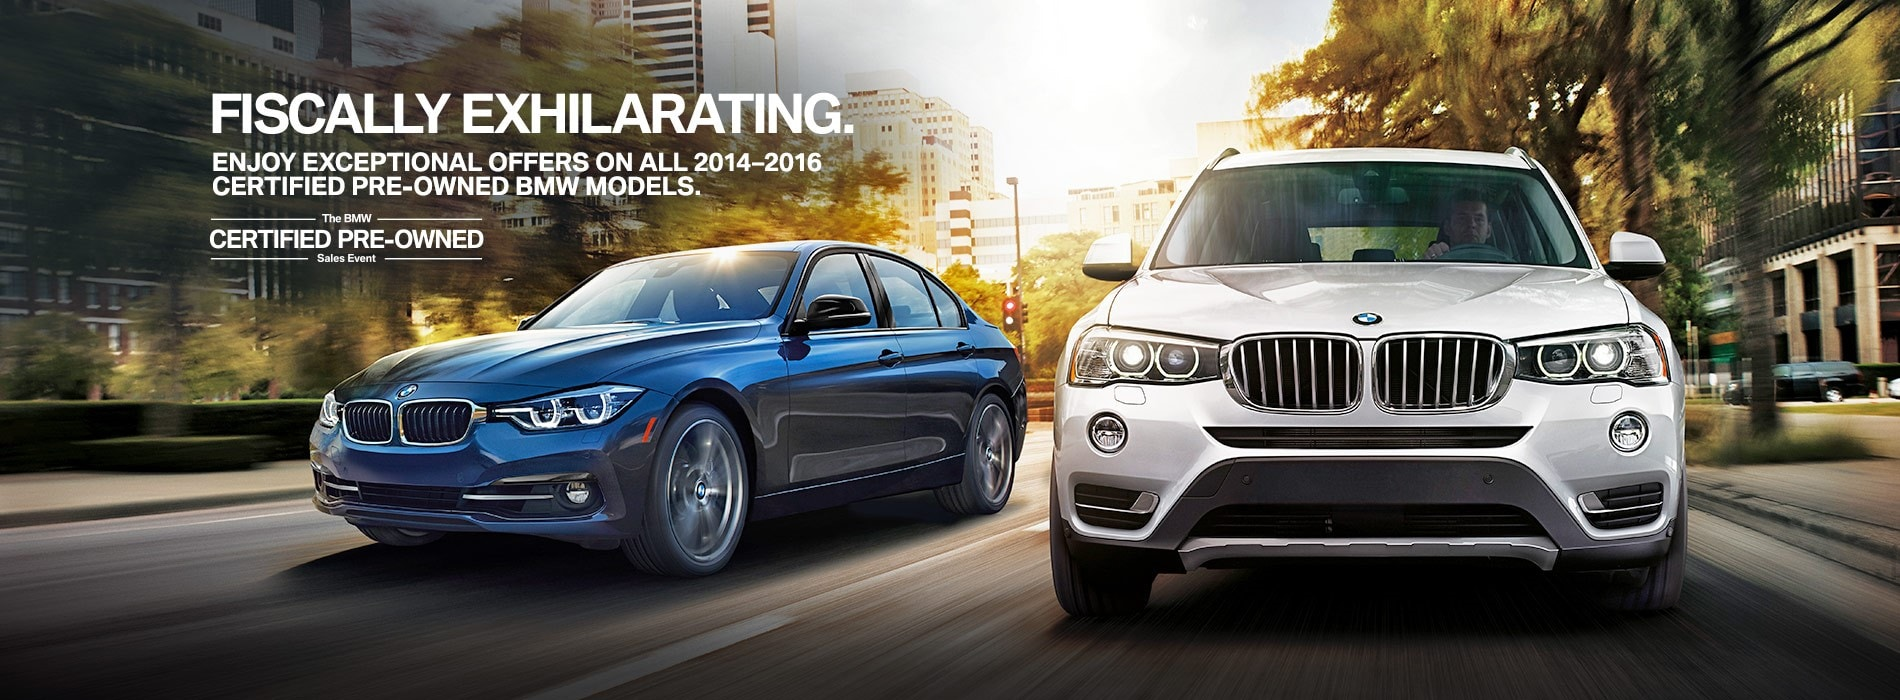 Bmw Pre Owned >> Certified Pre Owned Bmw In Jacksonville Florida Tom Bush Bmw